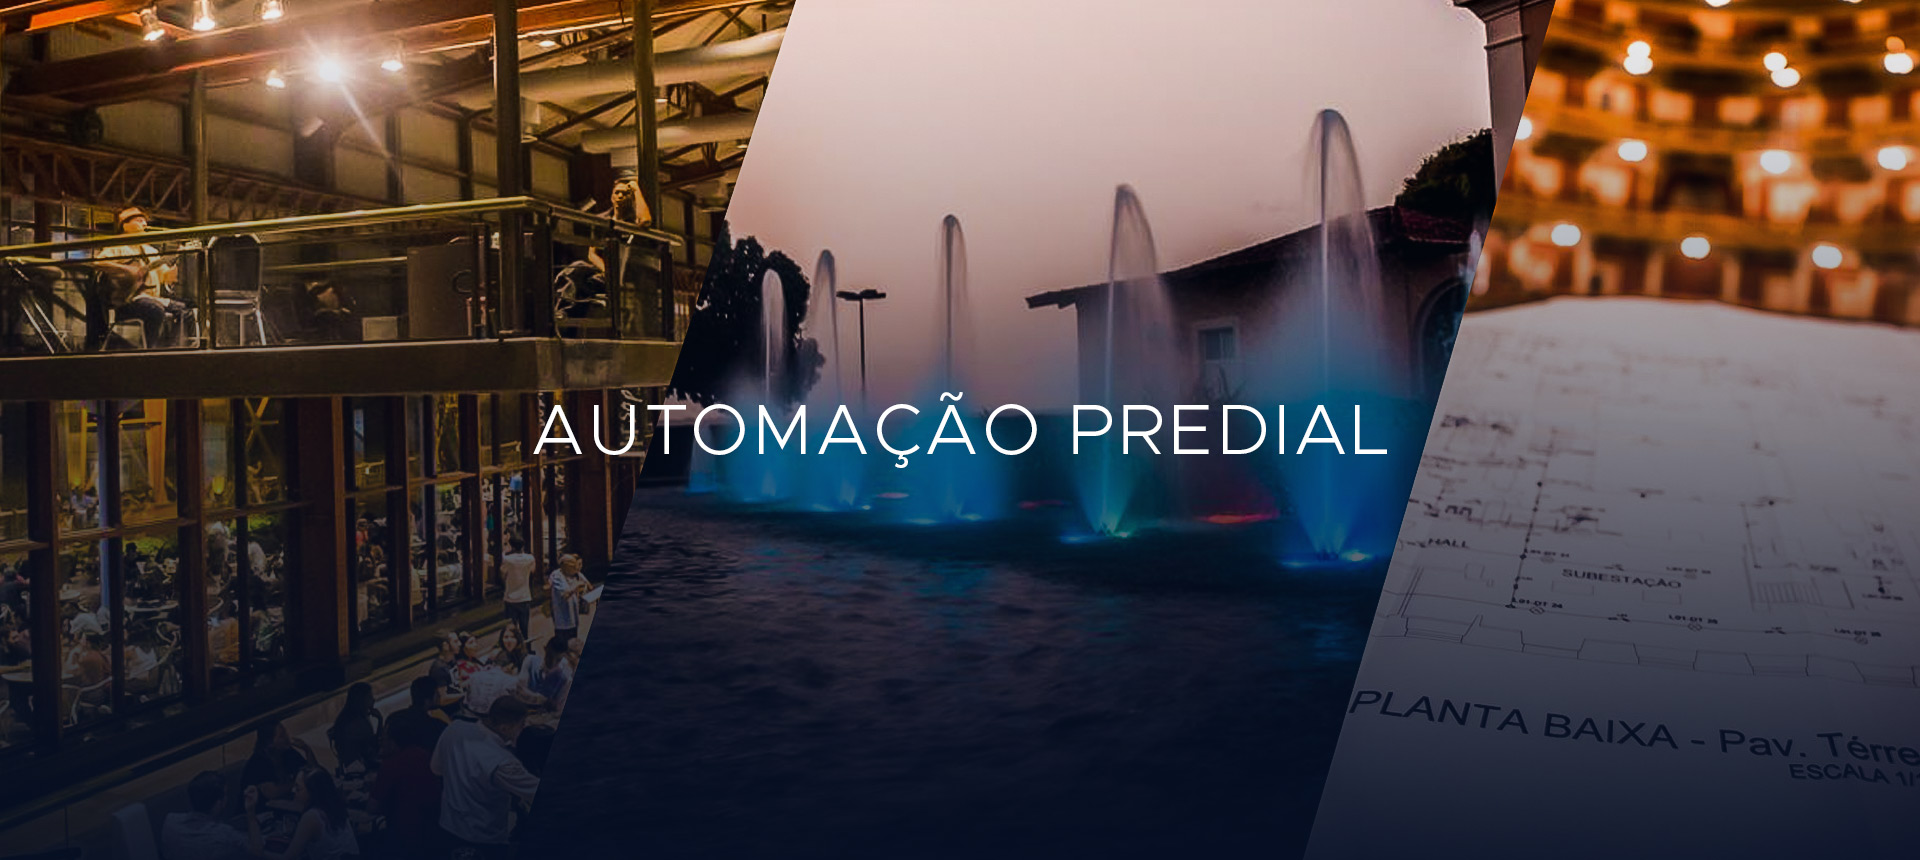 slide home aumoacao predial